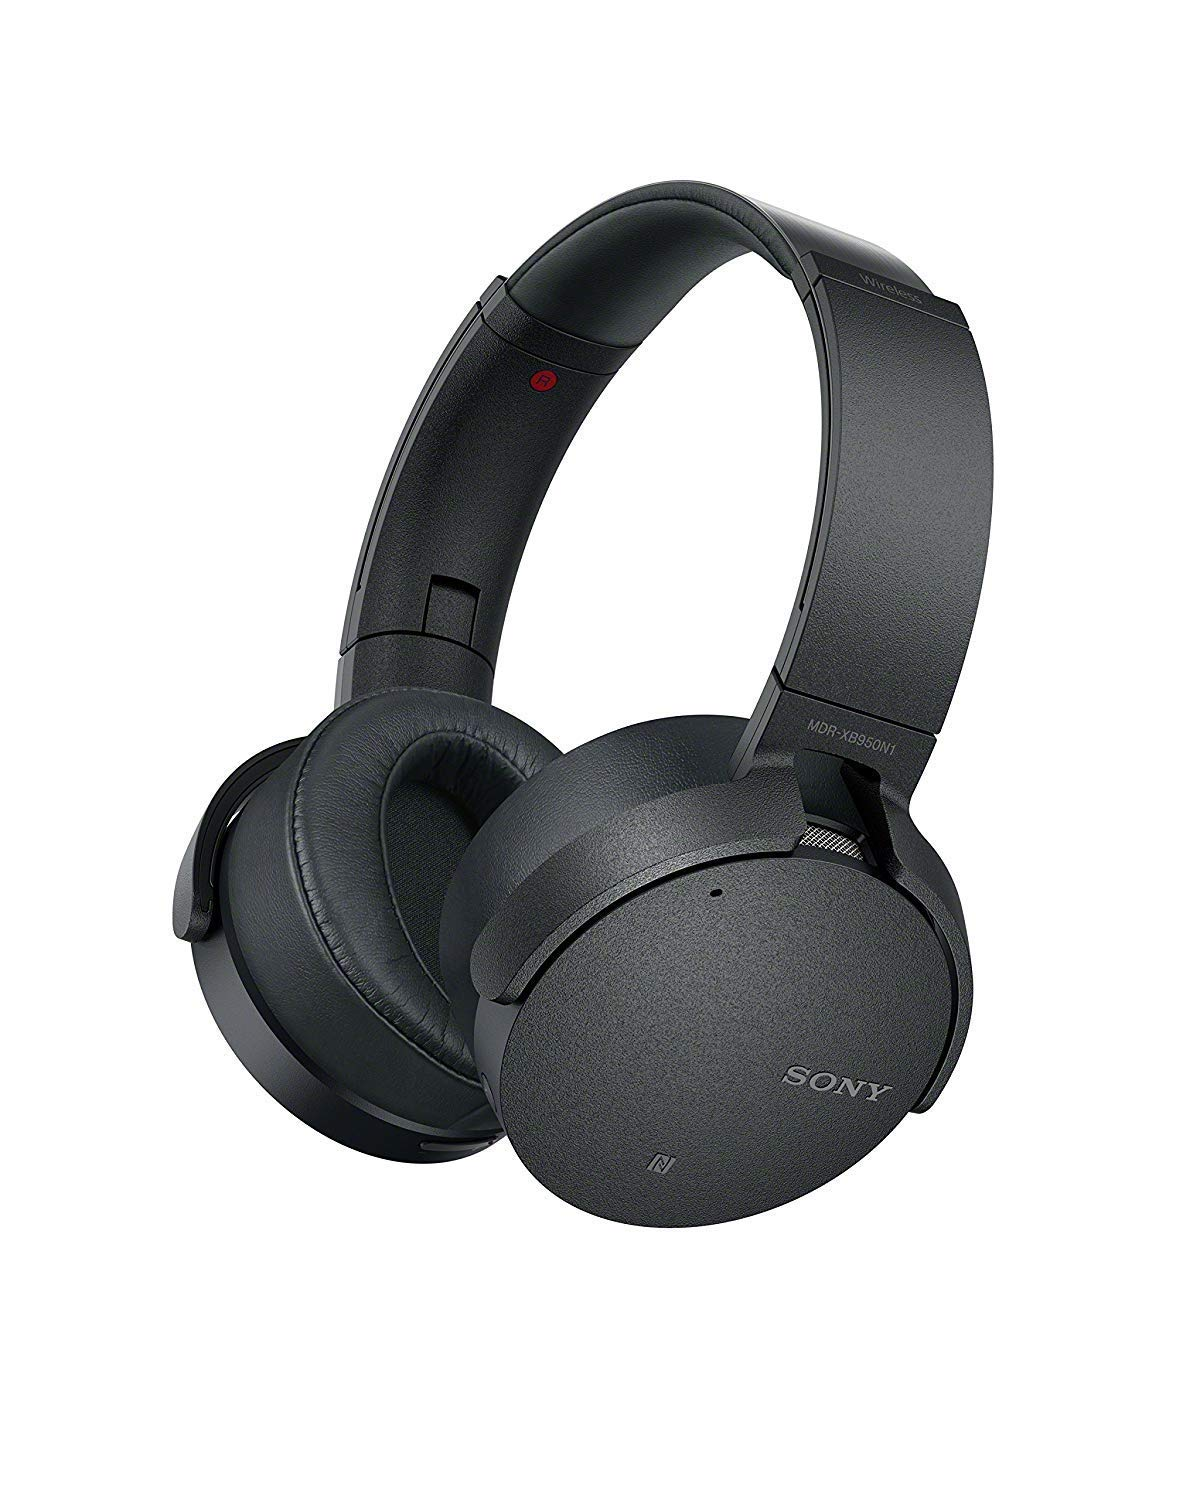 Sony XB950N1 Extra Bass Wireless Noise Cancelling Headphones - Black (International Version) … (Renewed)